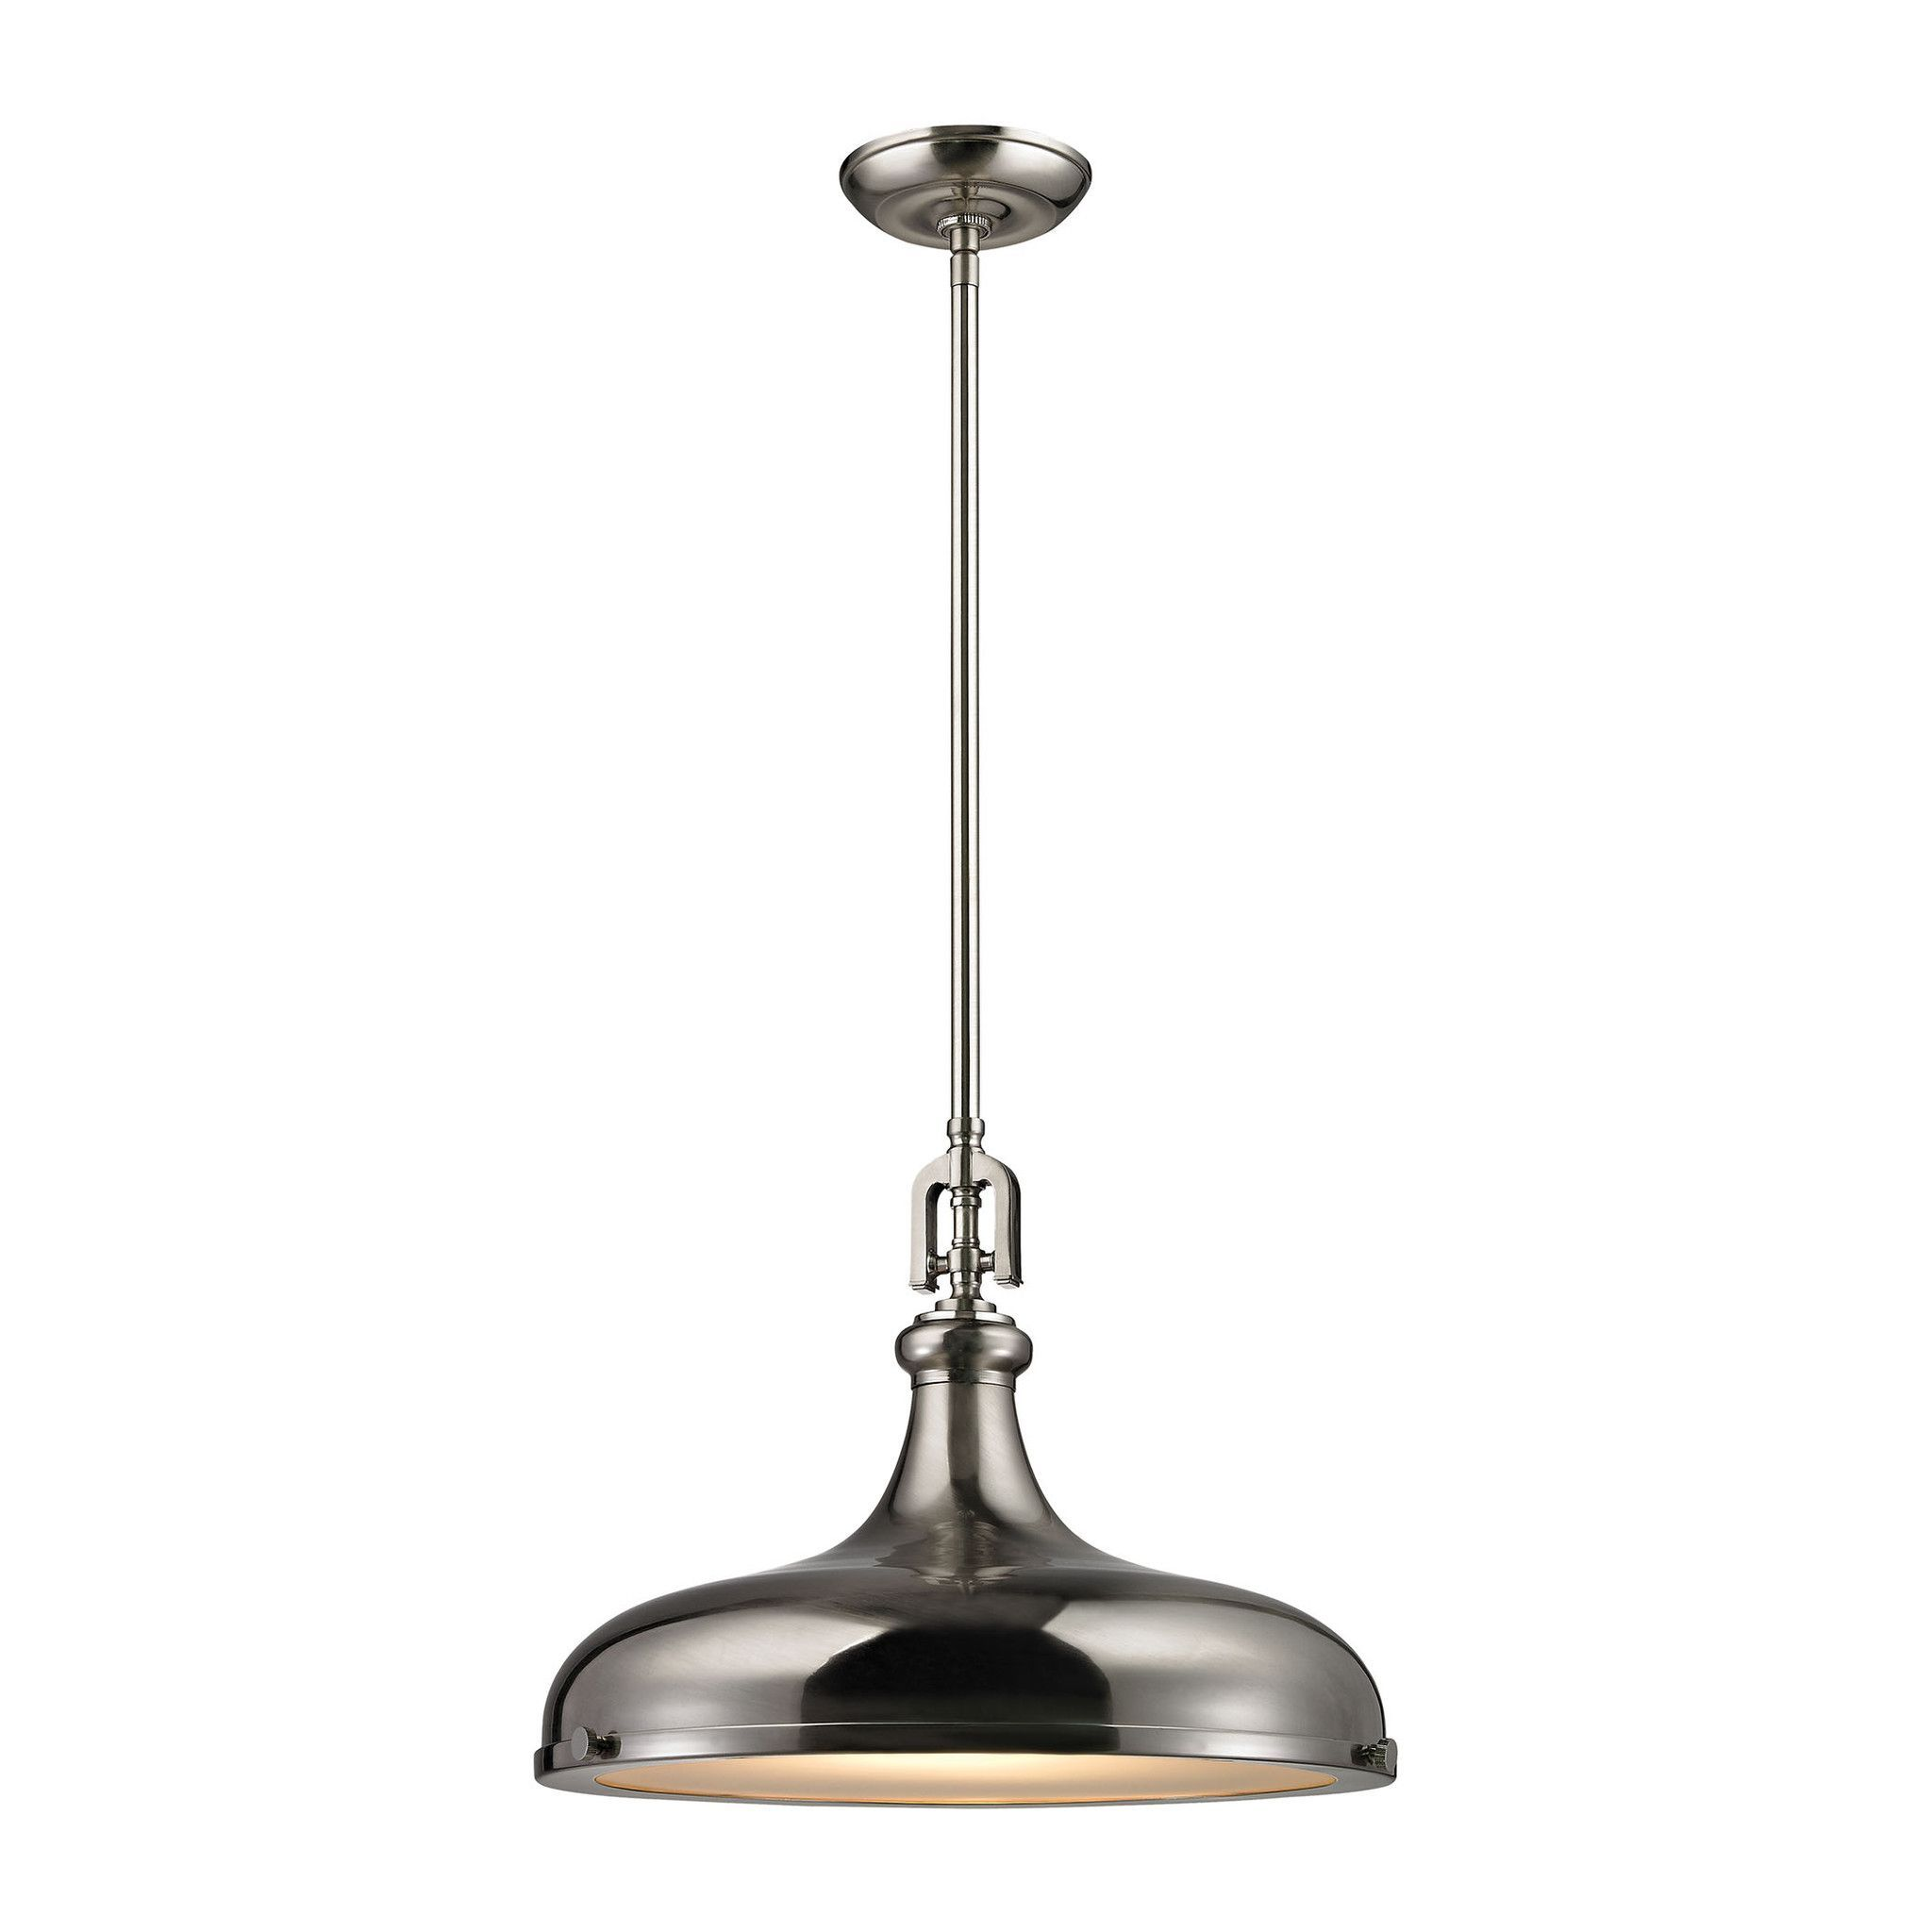 ELK Lighting 57052/1 Rutherford Collection Brushed Nickel Finish